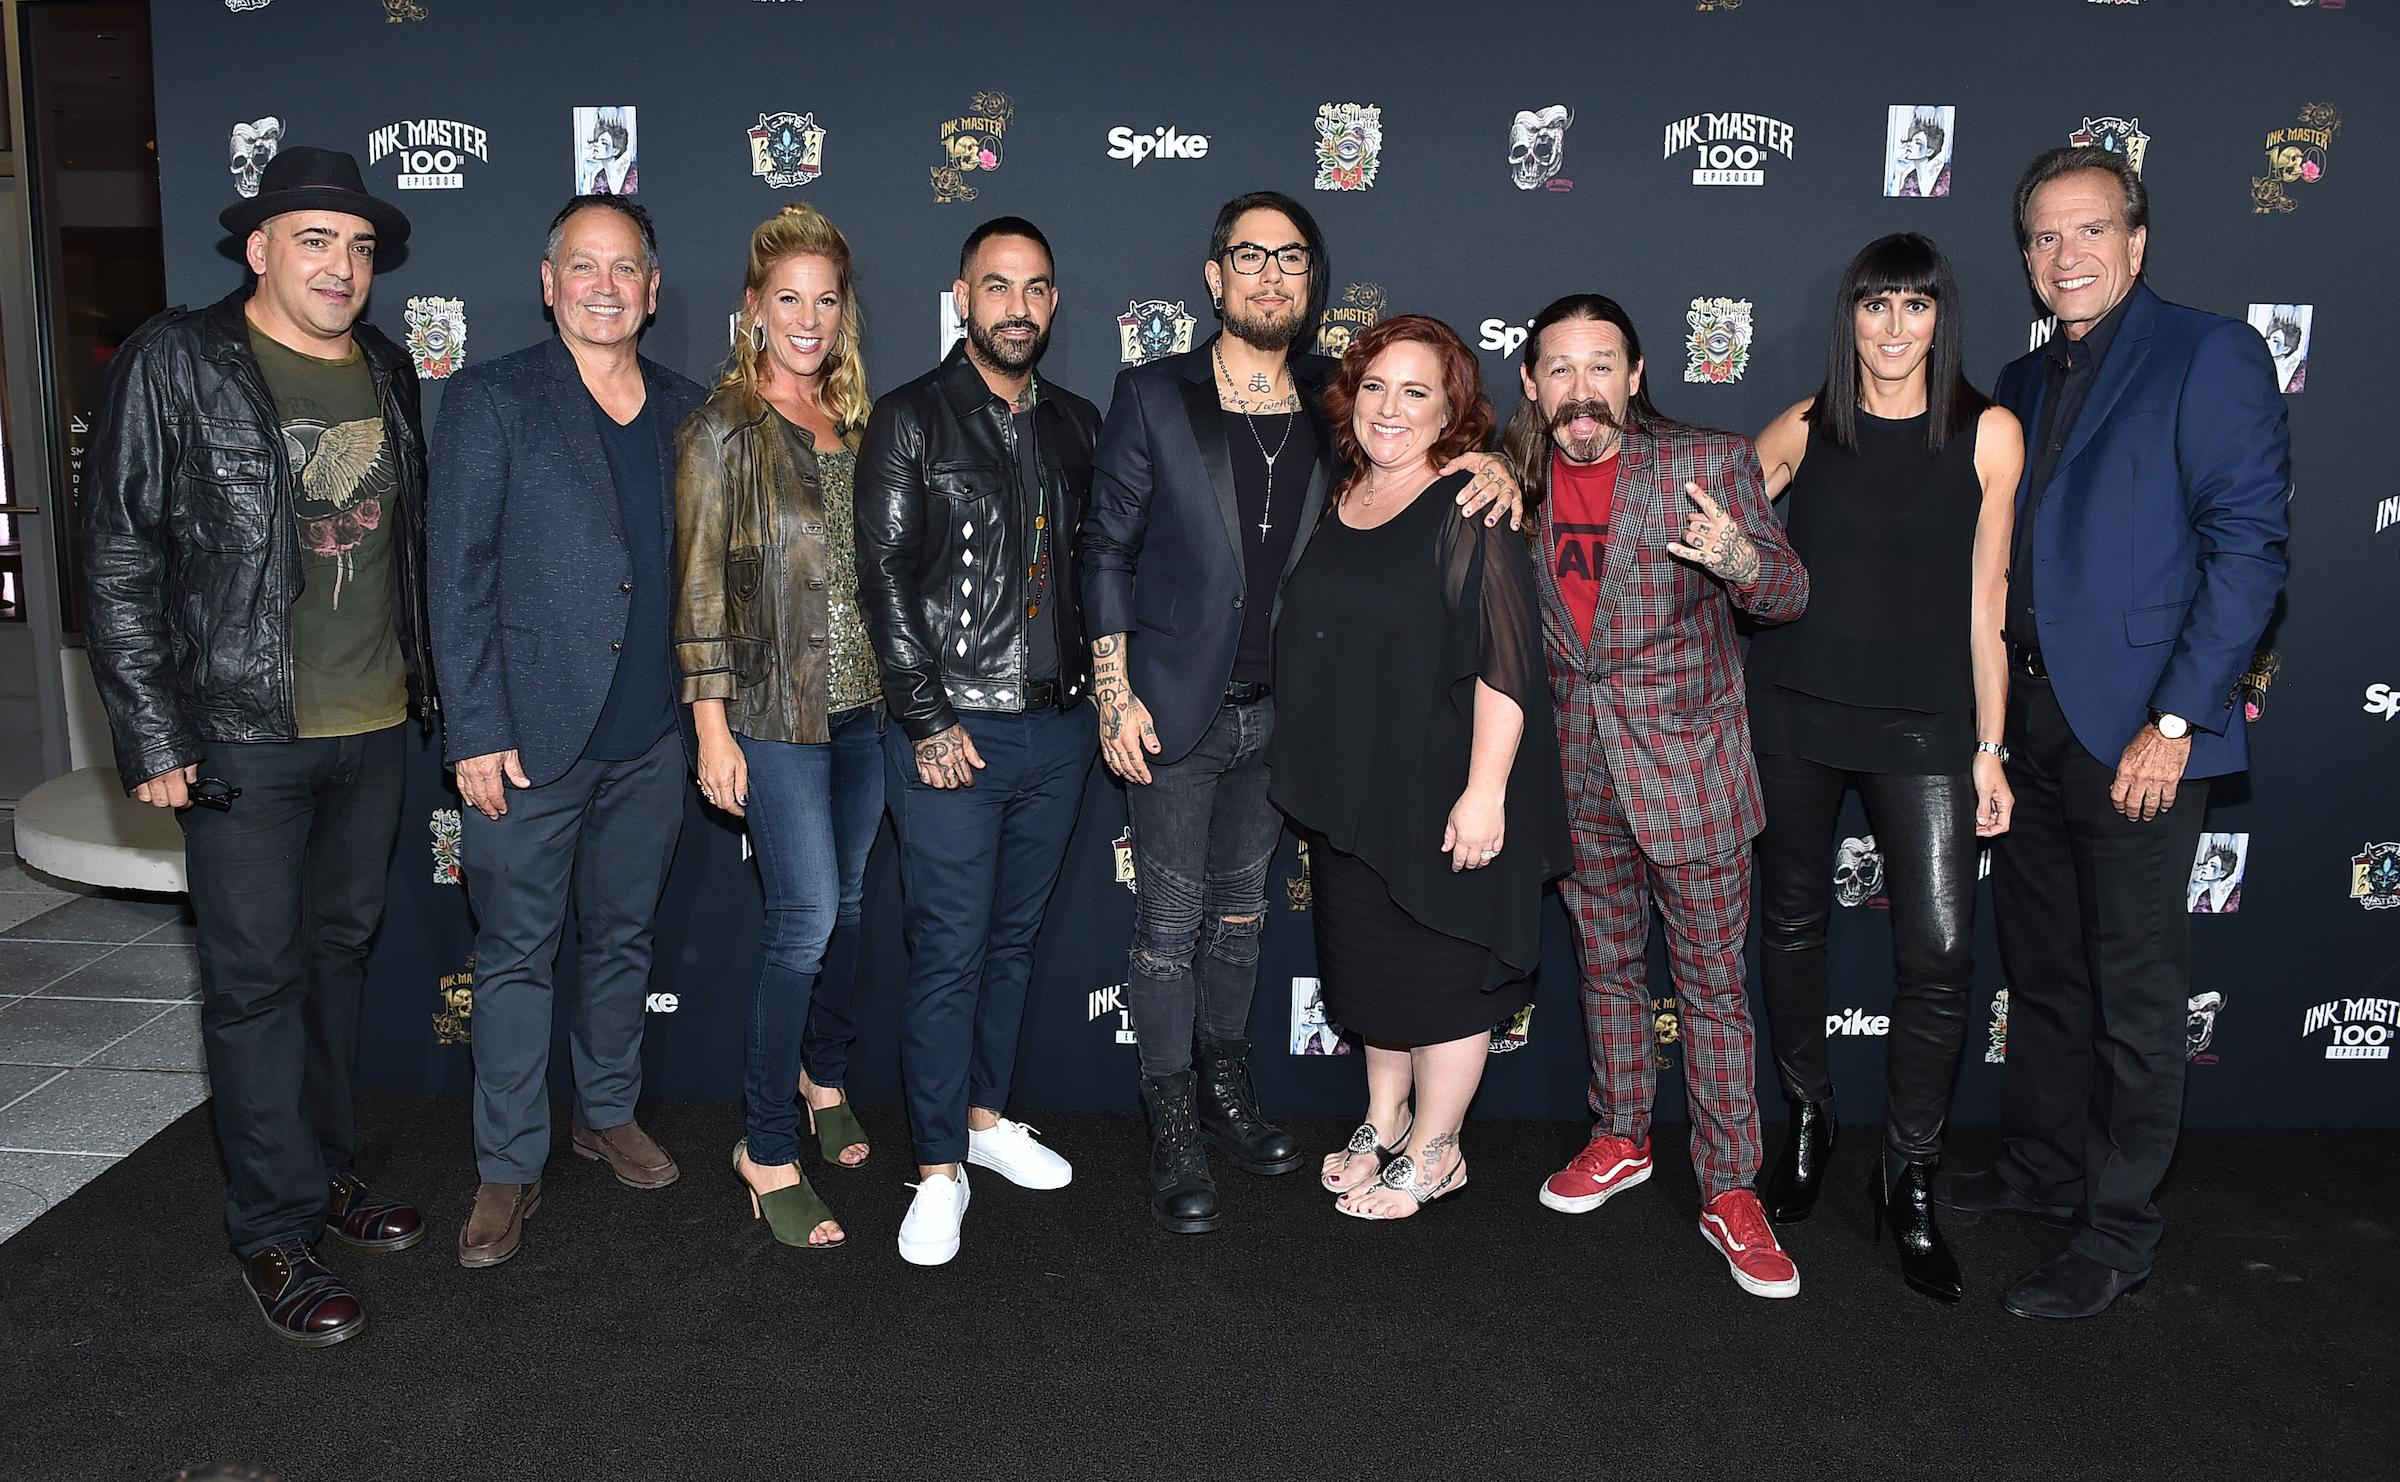 Ink Master 100-Episode Party 1